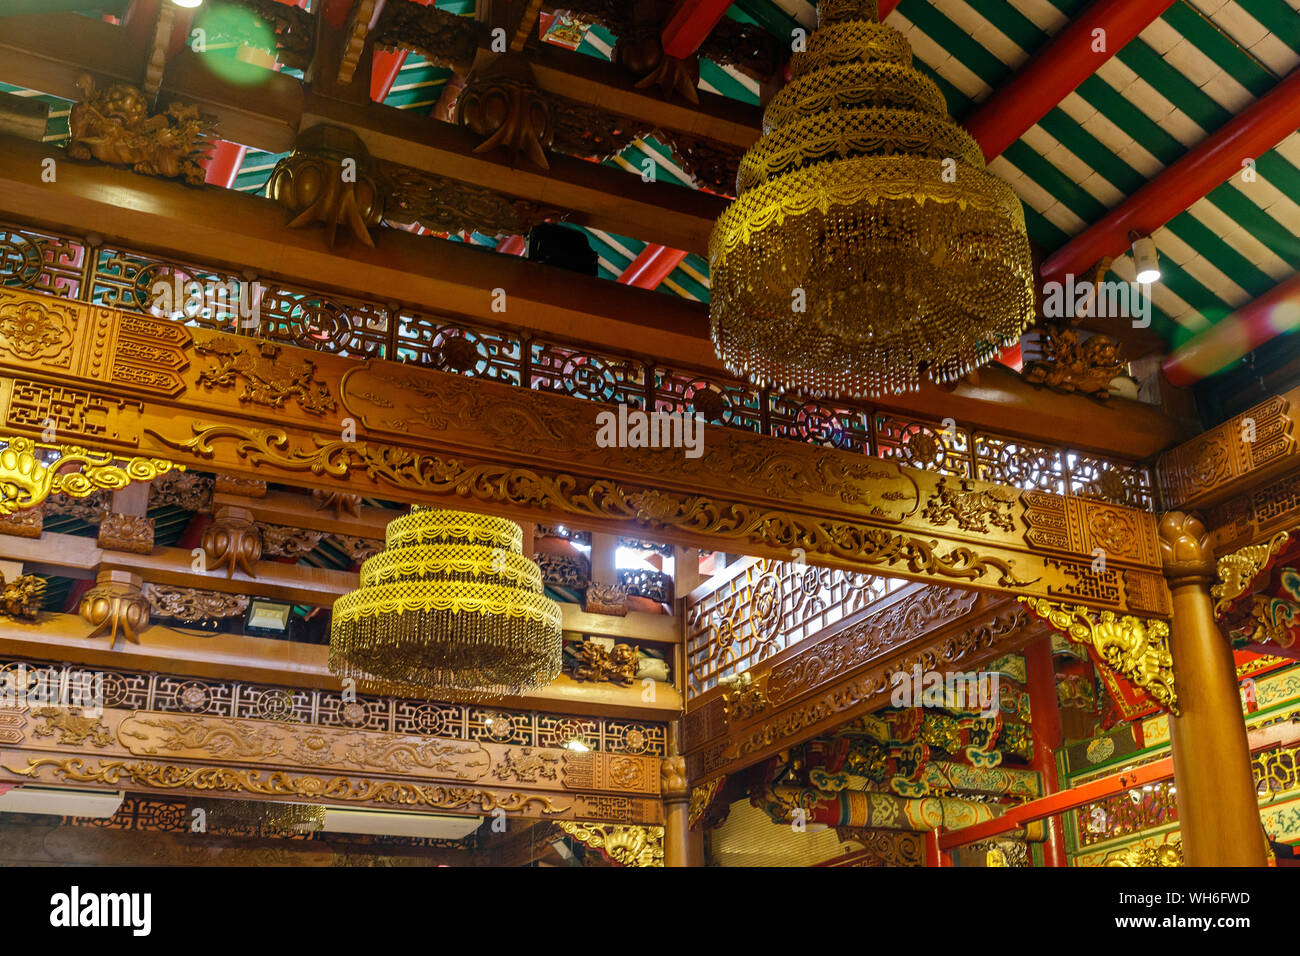 Intricately decorated ceiling of Wat Mangkon Kamalawat or Wat Leng Noei Yi, largest and most important Chinese Buddhist temple in Bangkok, Thailand Stock Photo